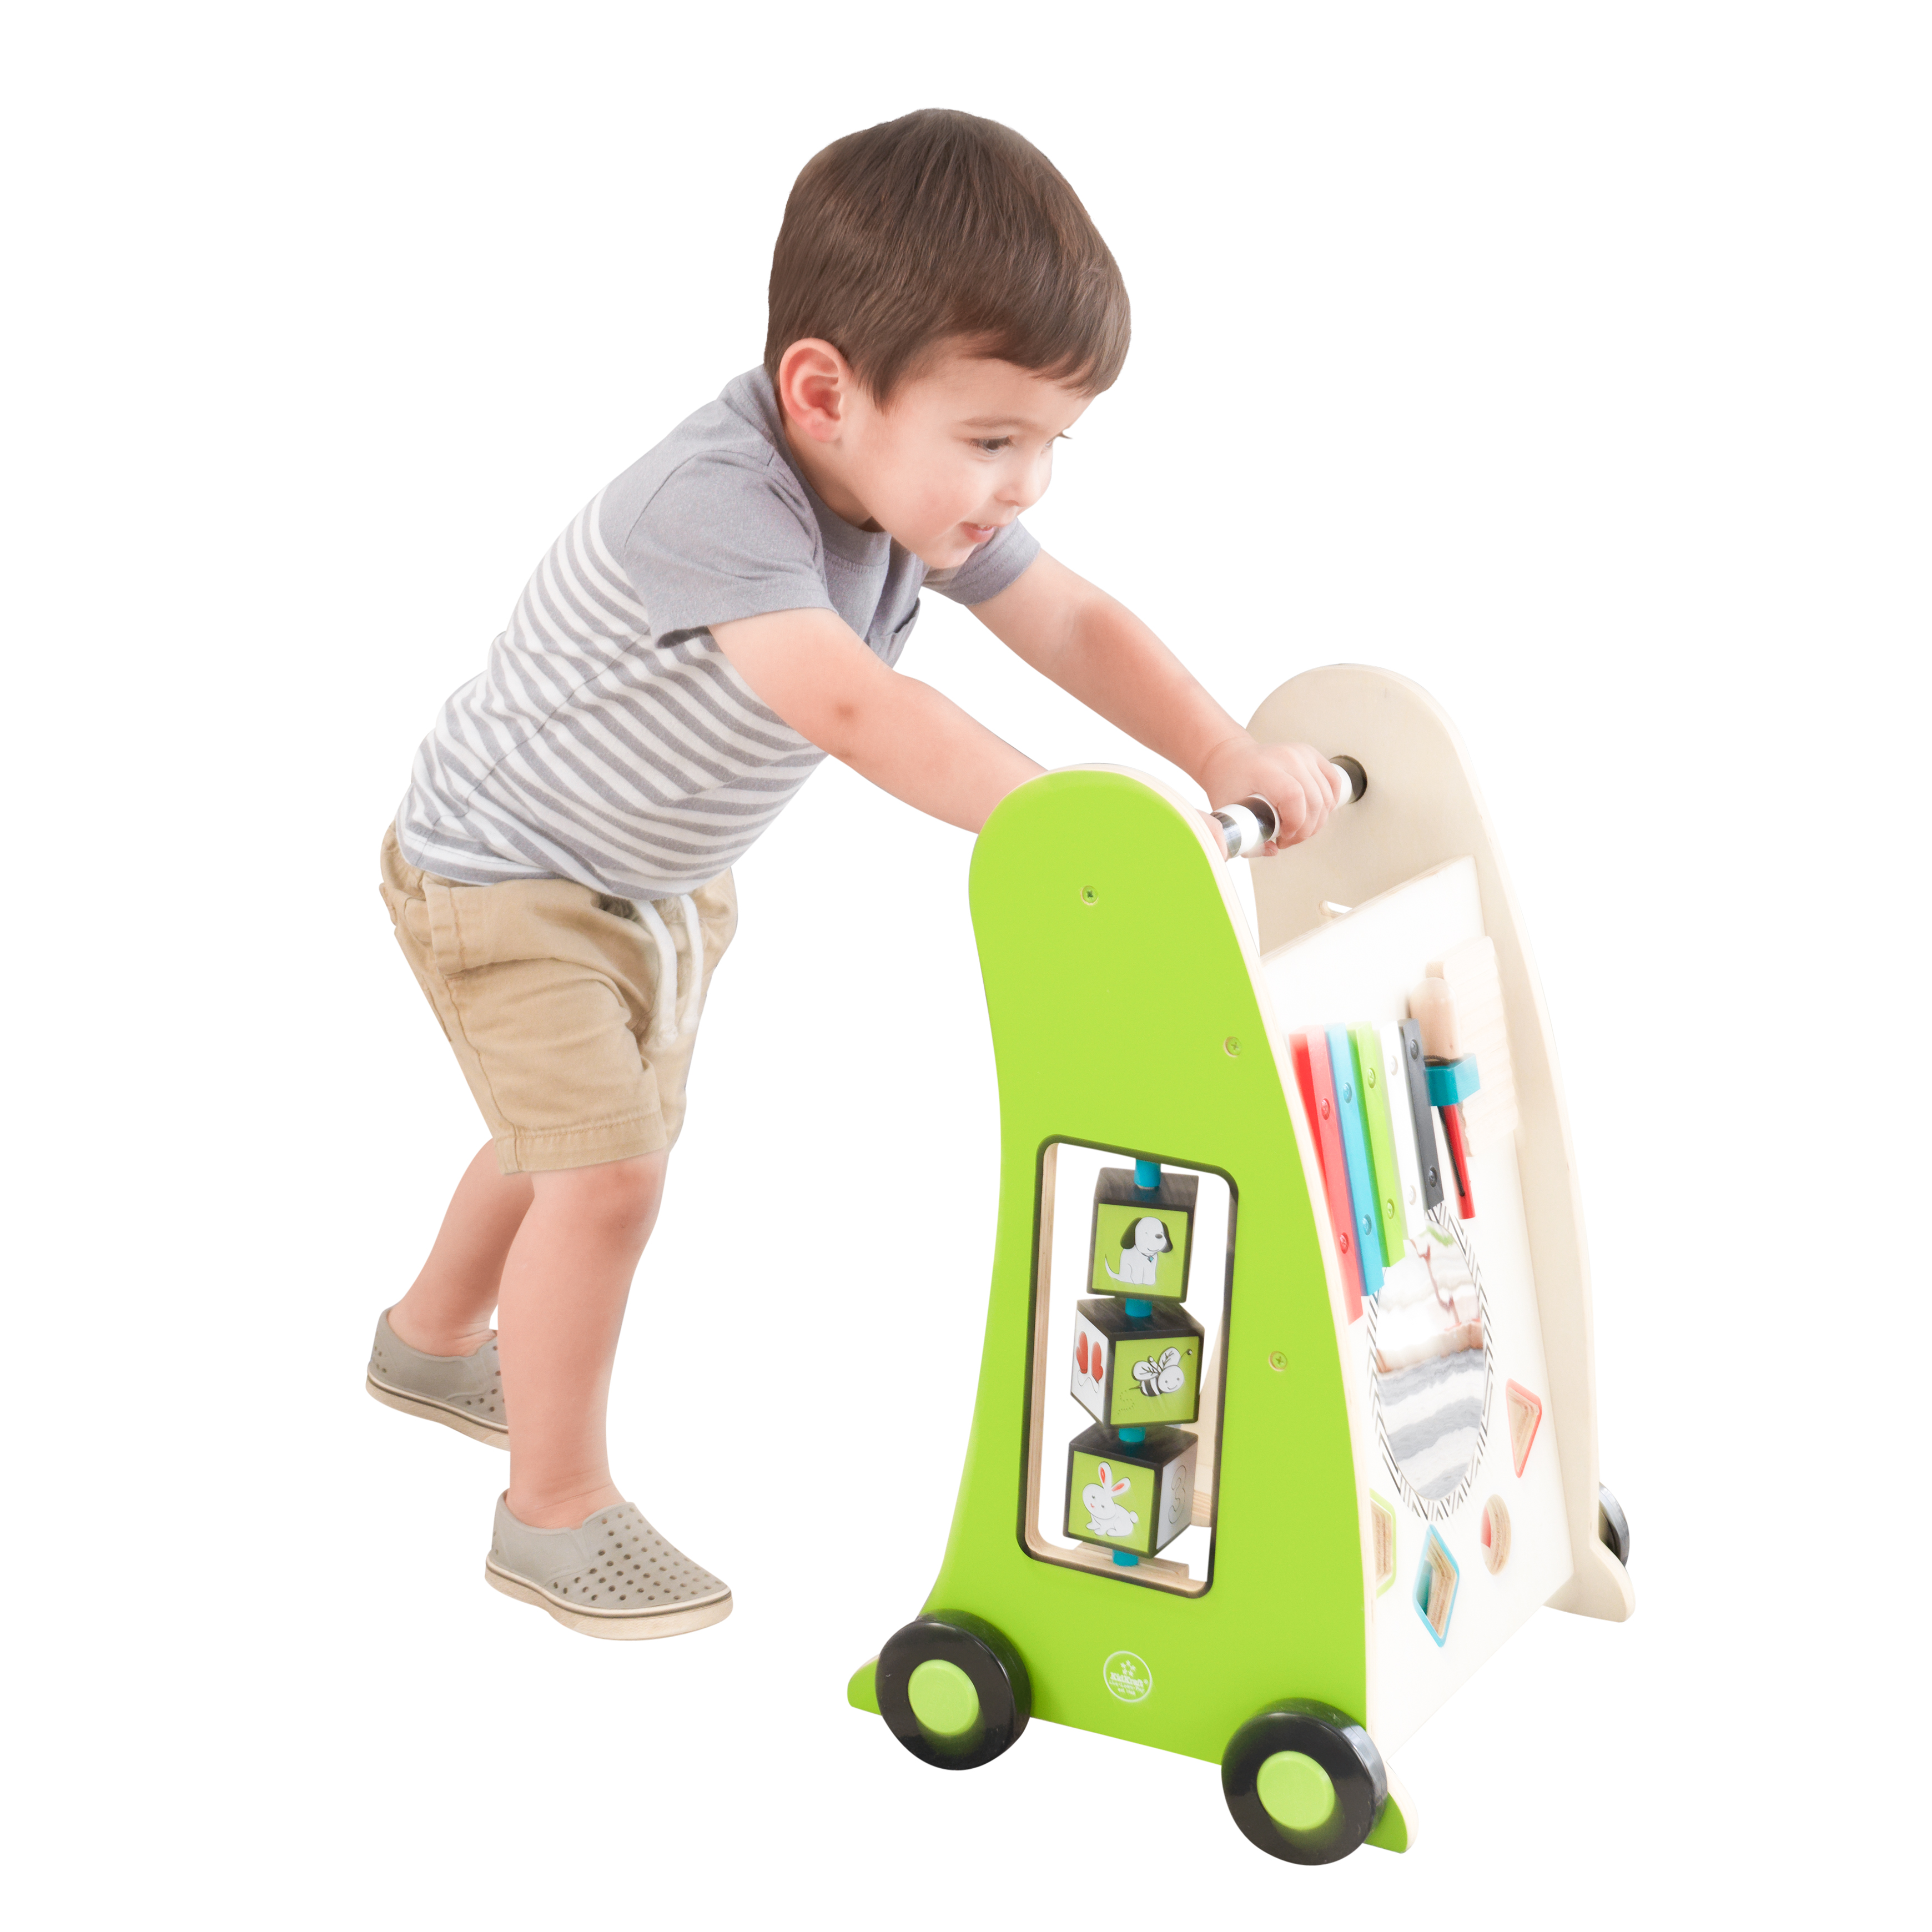 KidKraft Toddler Push Along Play Cart - Colorful Toys for Kids, Musical Toys, Walking Toys, Interactive Multi Use Walking Baby Toy